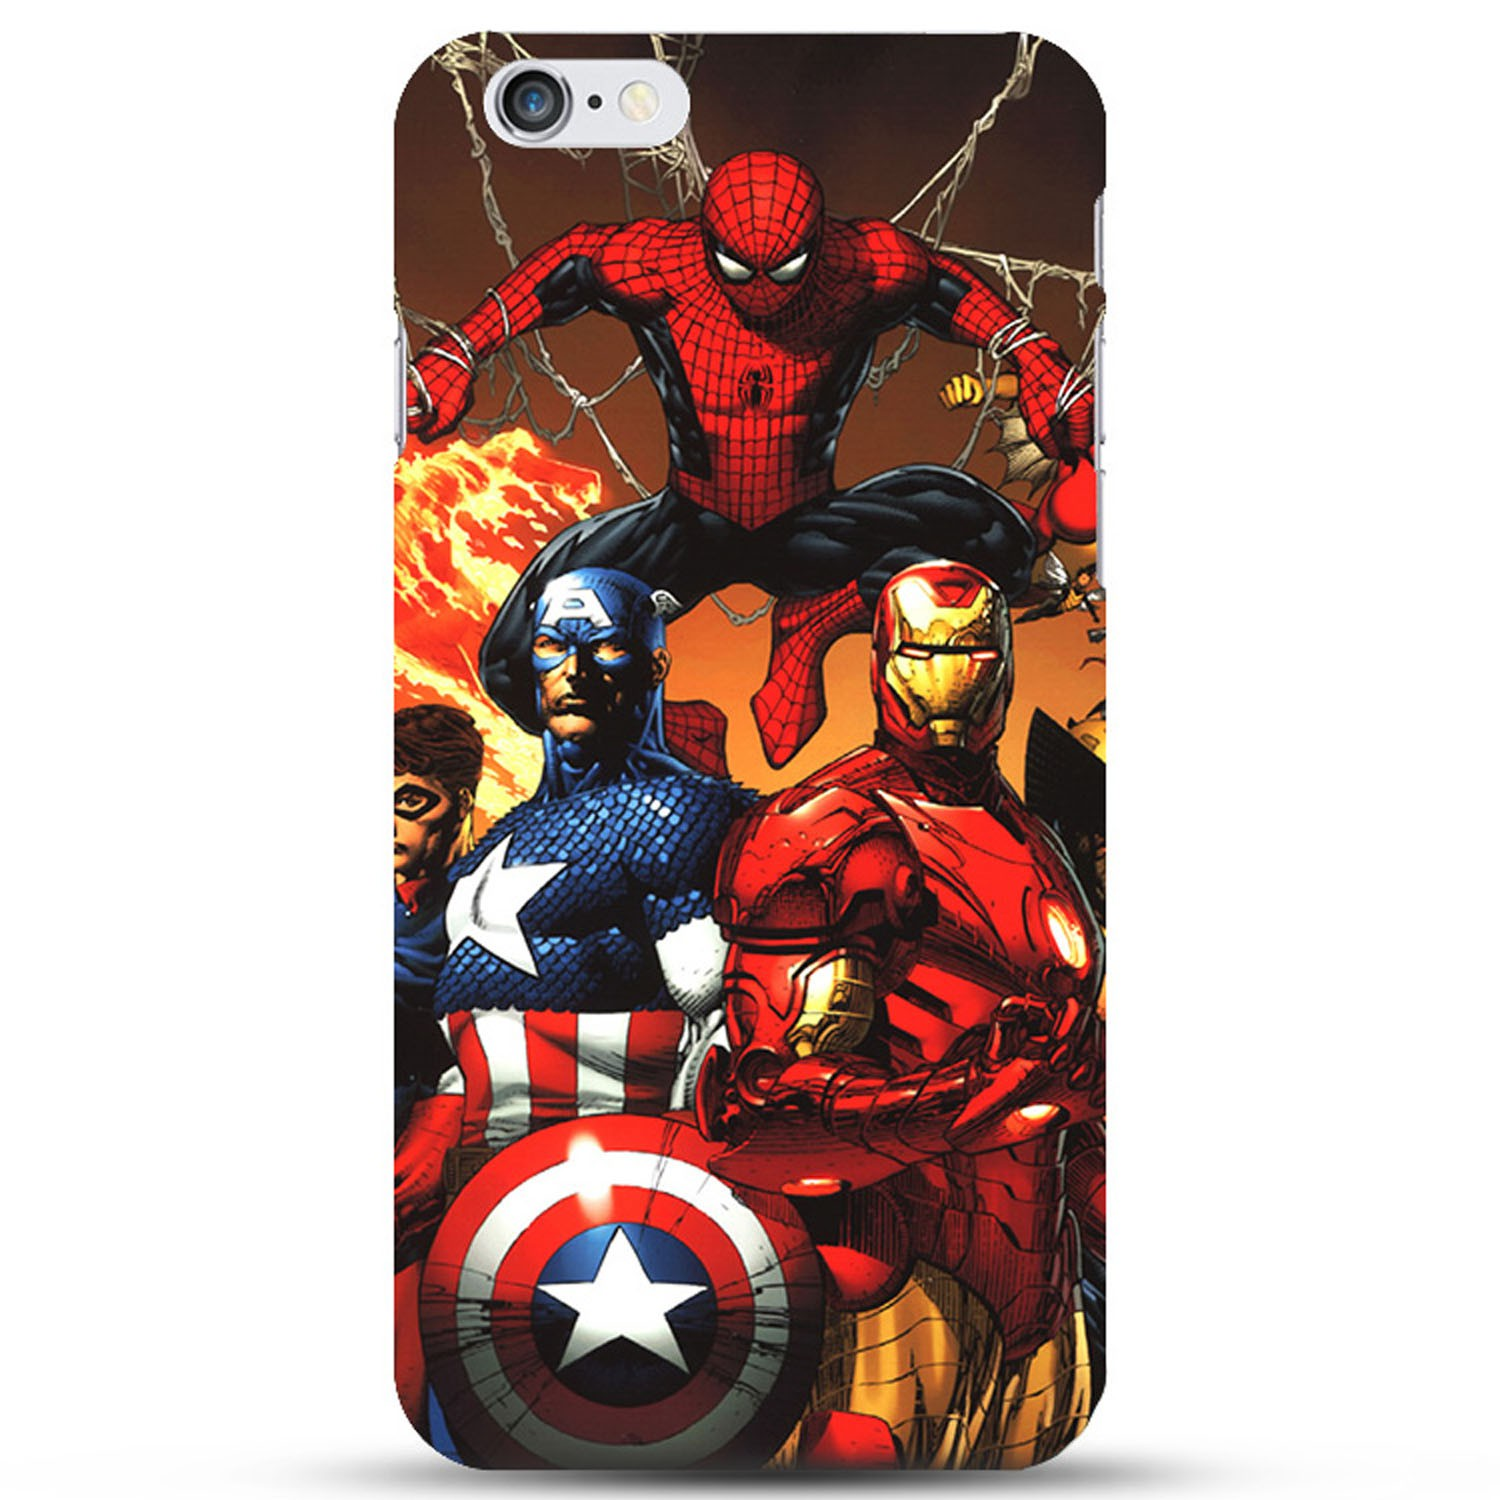 Kritzel Superheroes Collection Case für iPhone 6 / 6s - #10